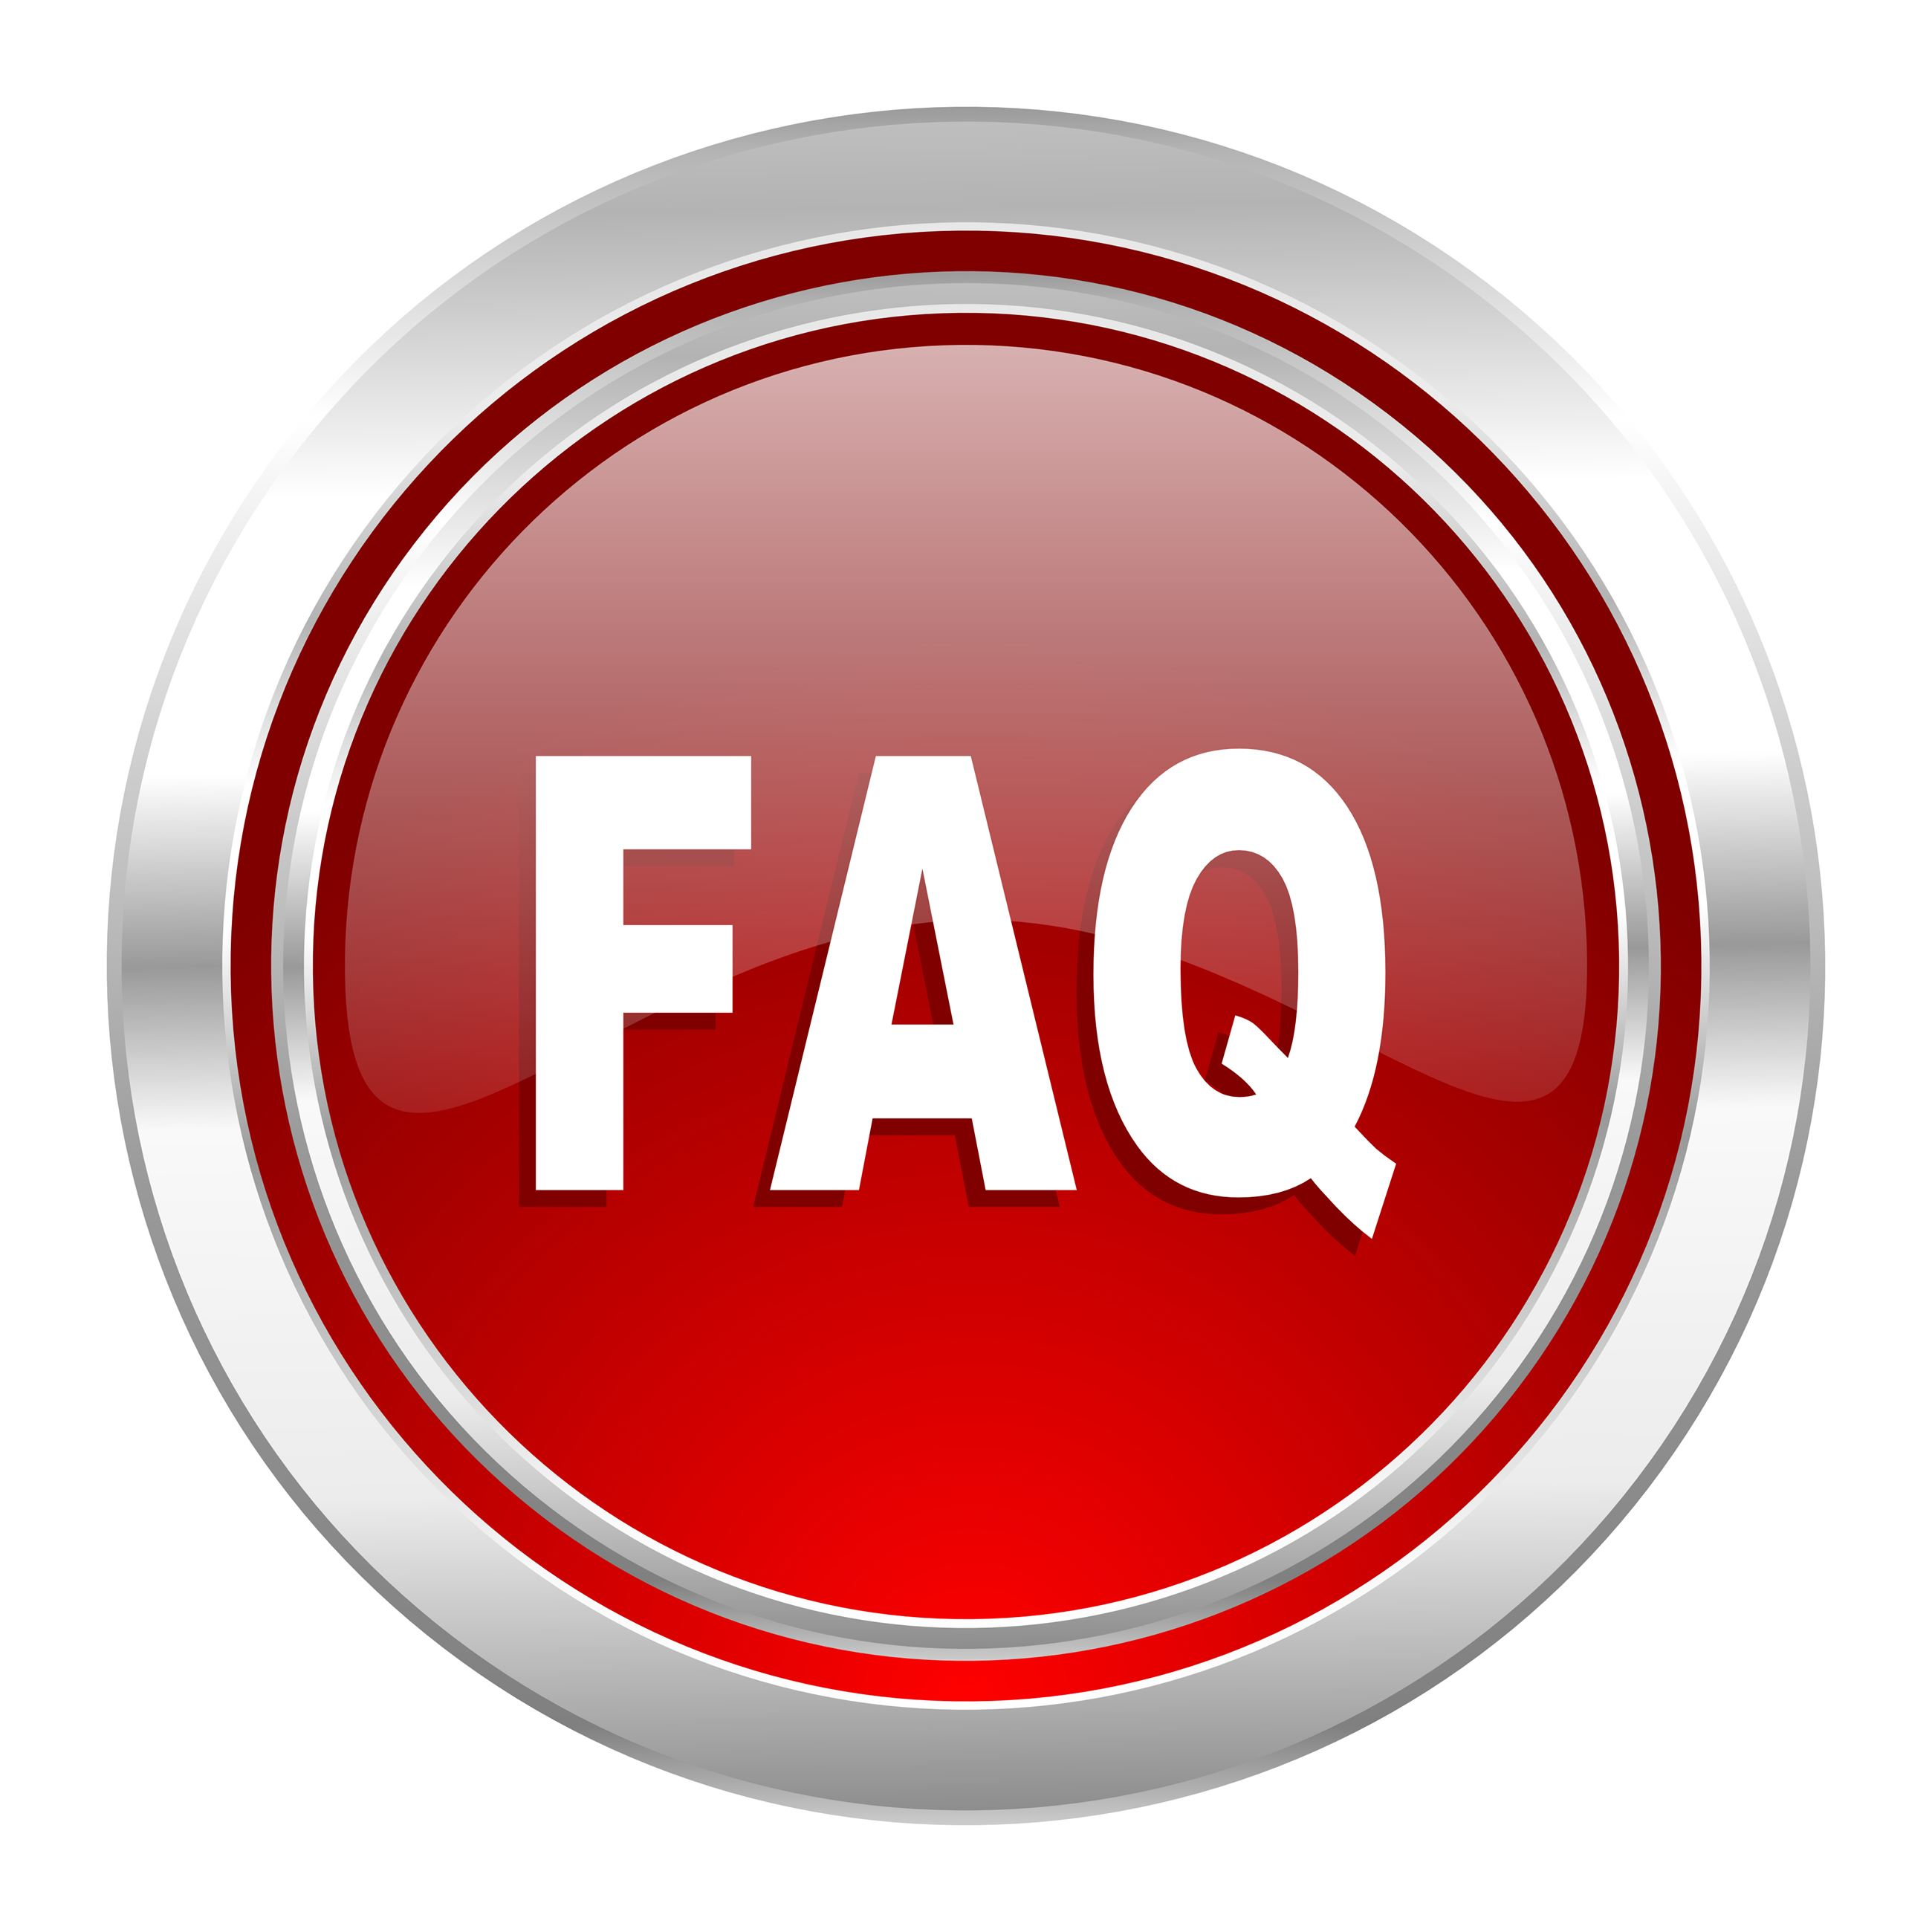 Find answers to questions frequently asked of the Expo Center